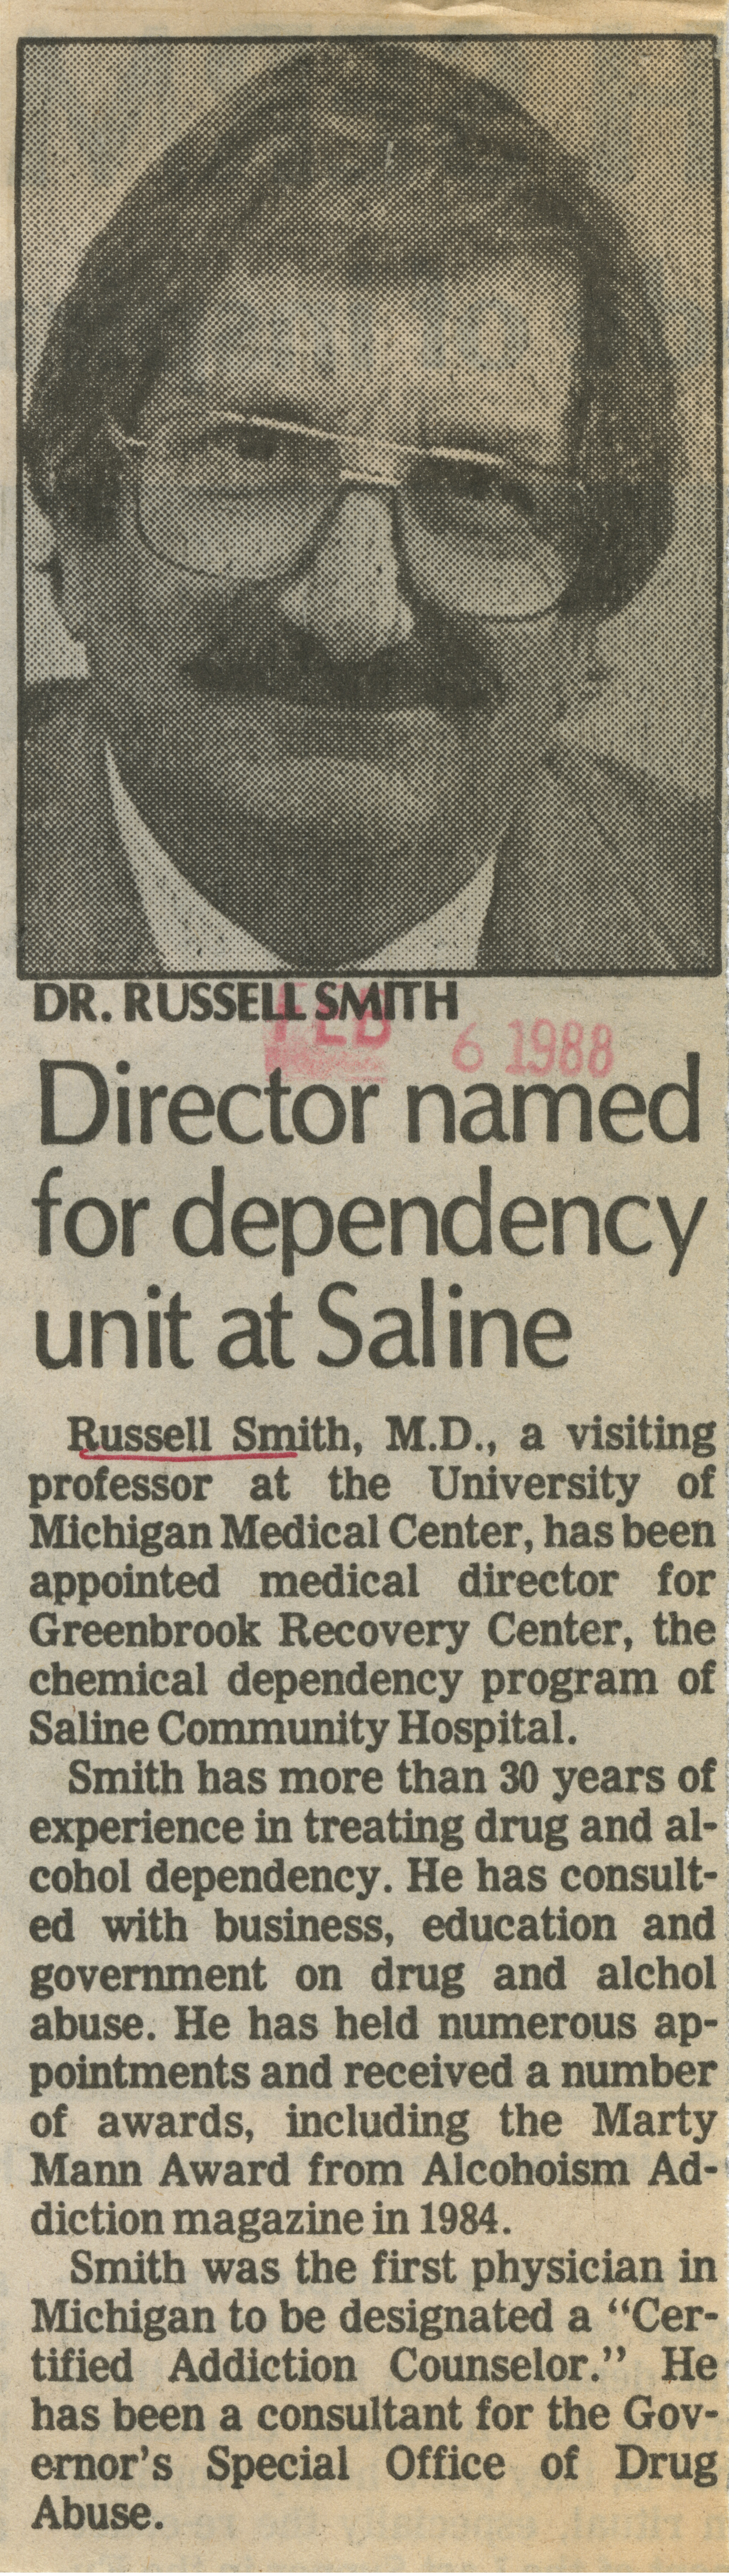 Director named for dependency unit at Saline image